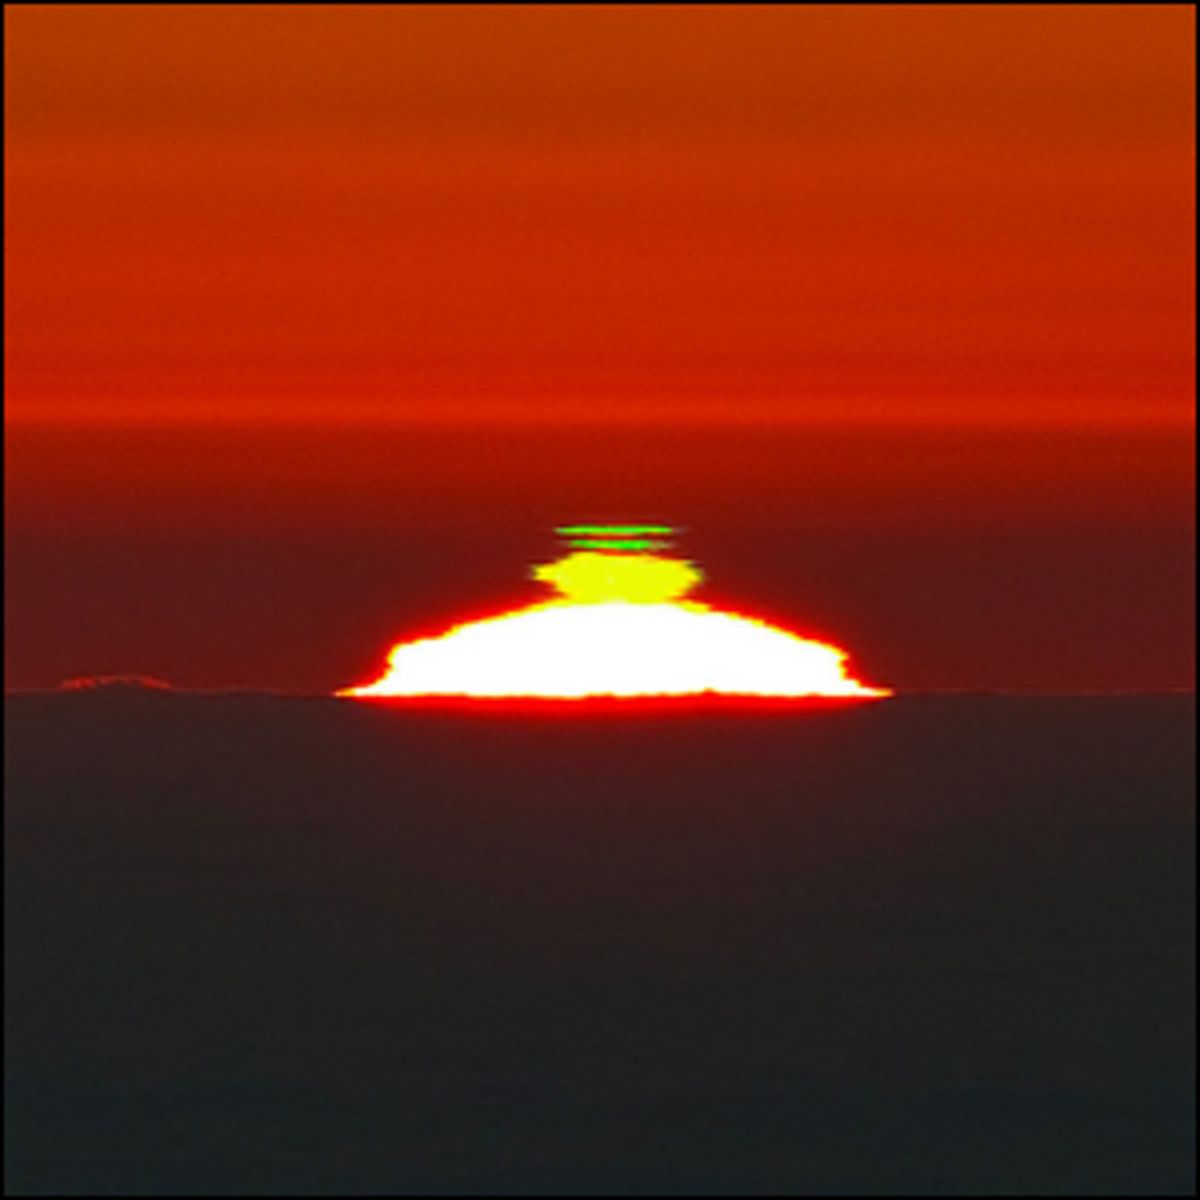 A double flash of green light as the Sun was setting on a sea of clouds below Cerro Paranal.